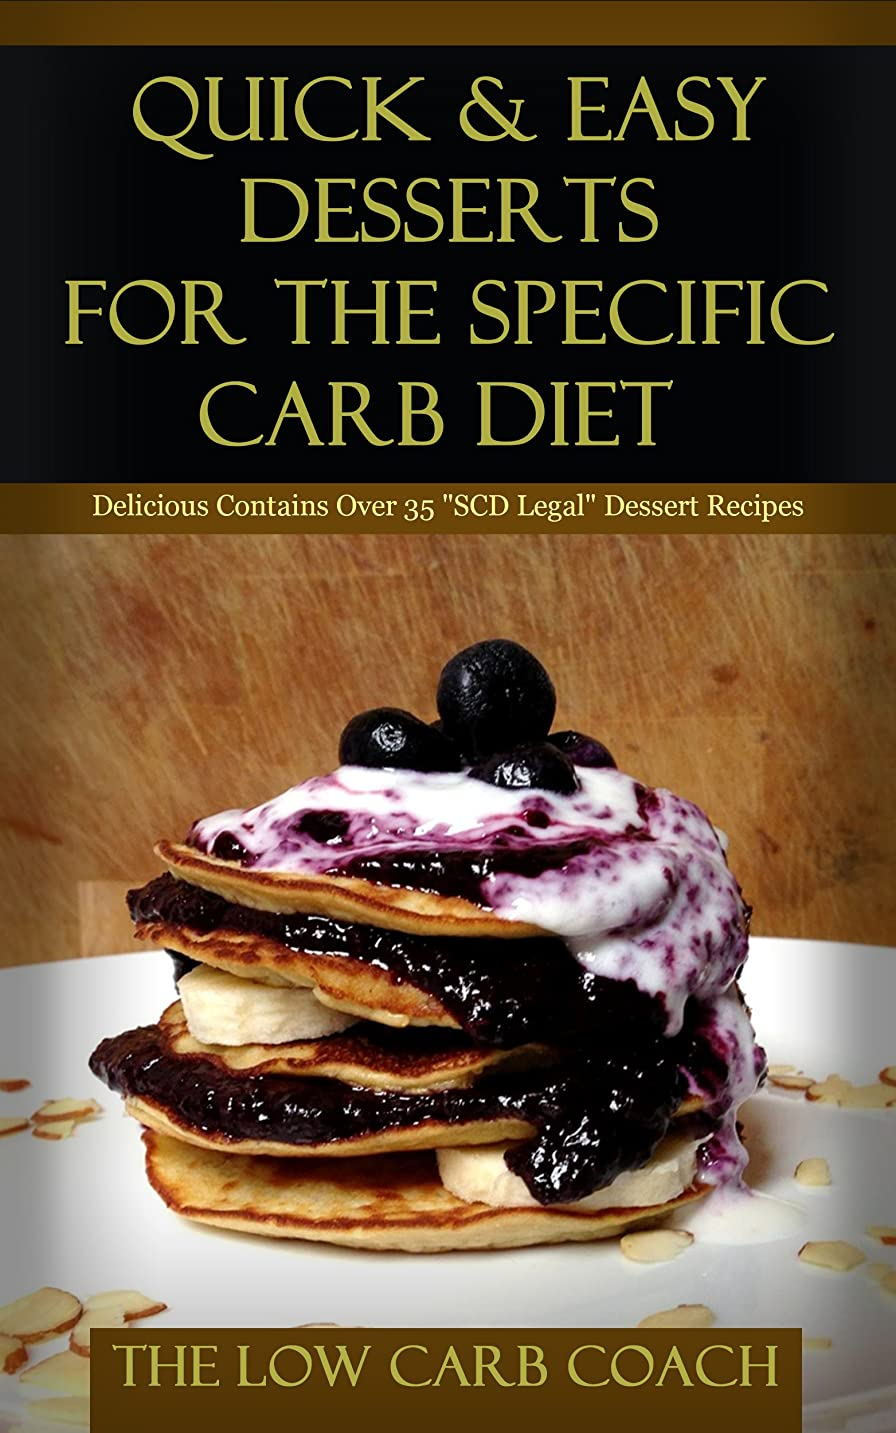 Quick & Easy Desserts for The Specific Carb Diet: Delicious Contains Over 35